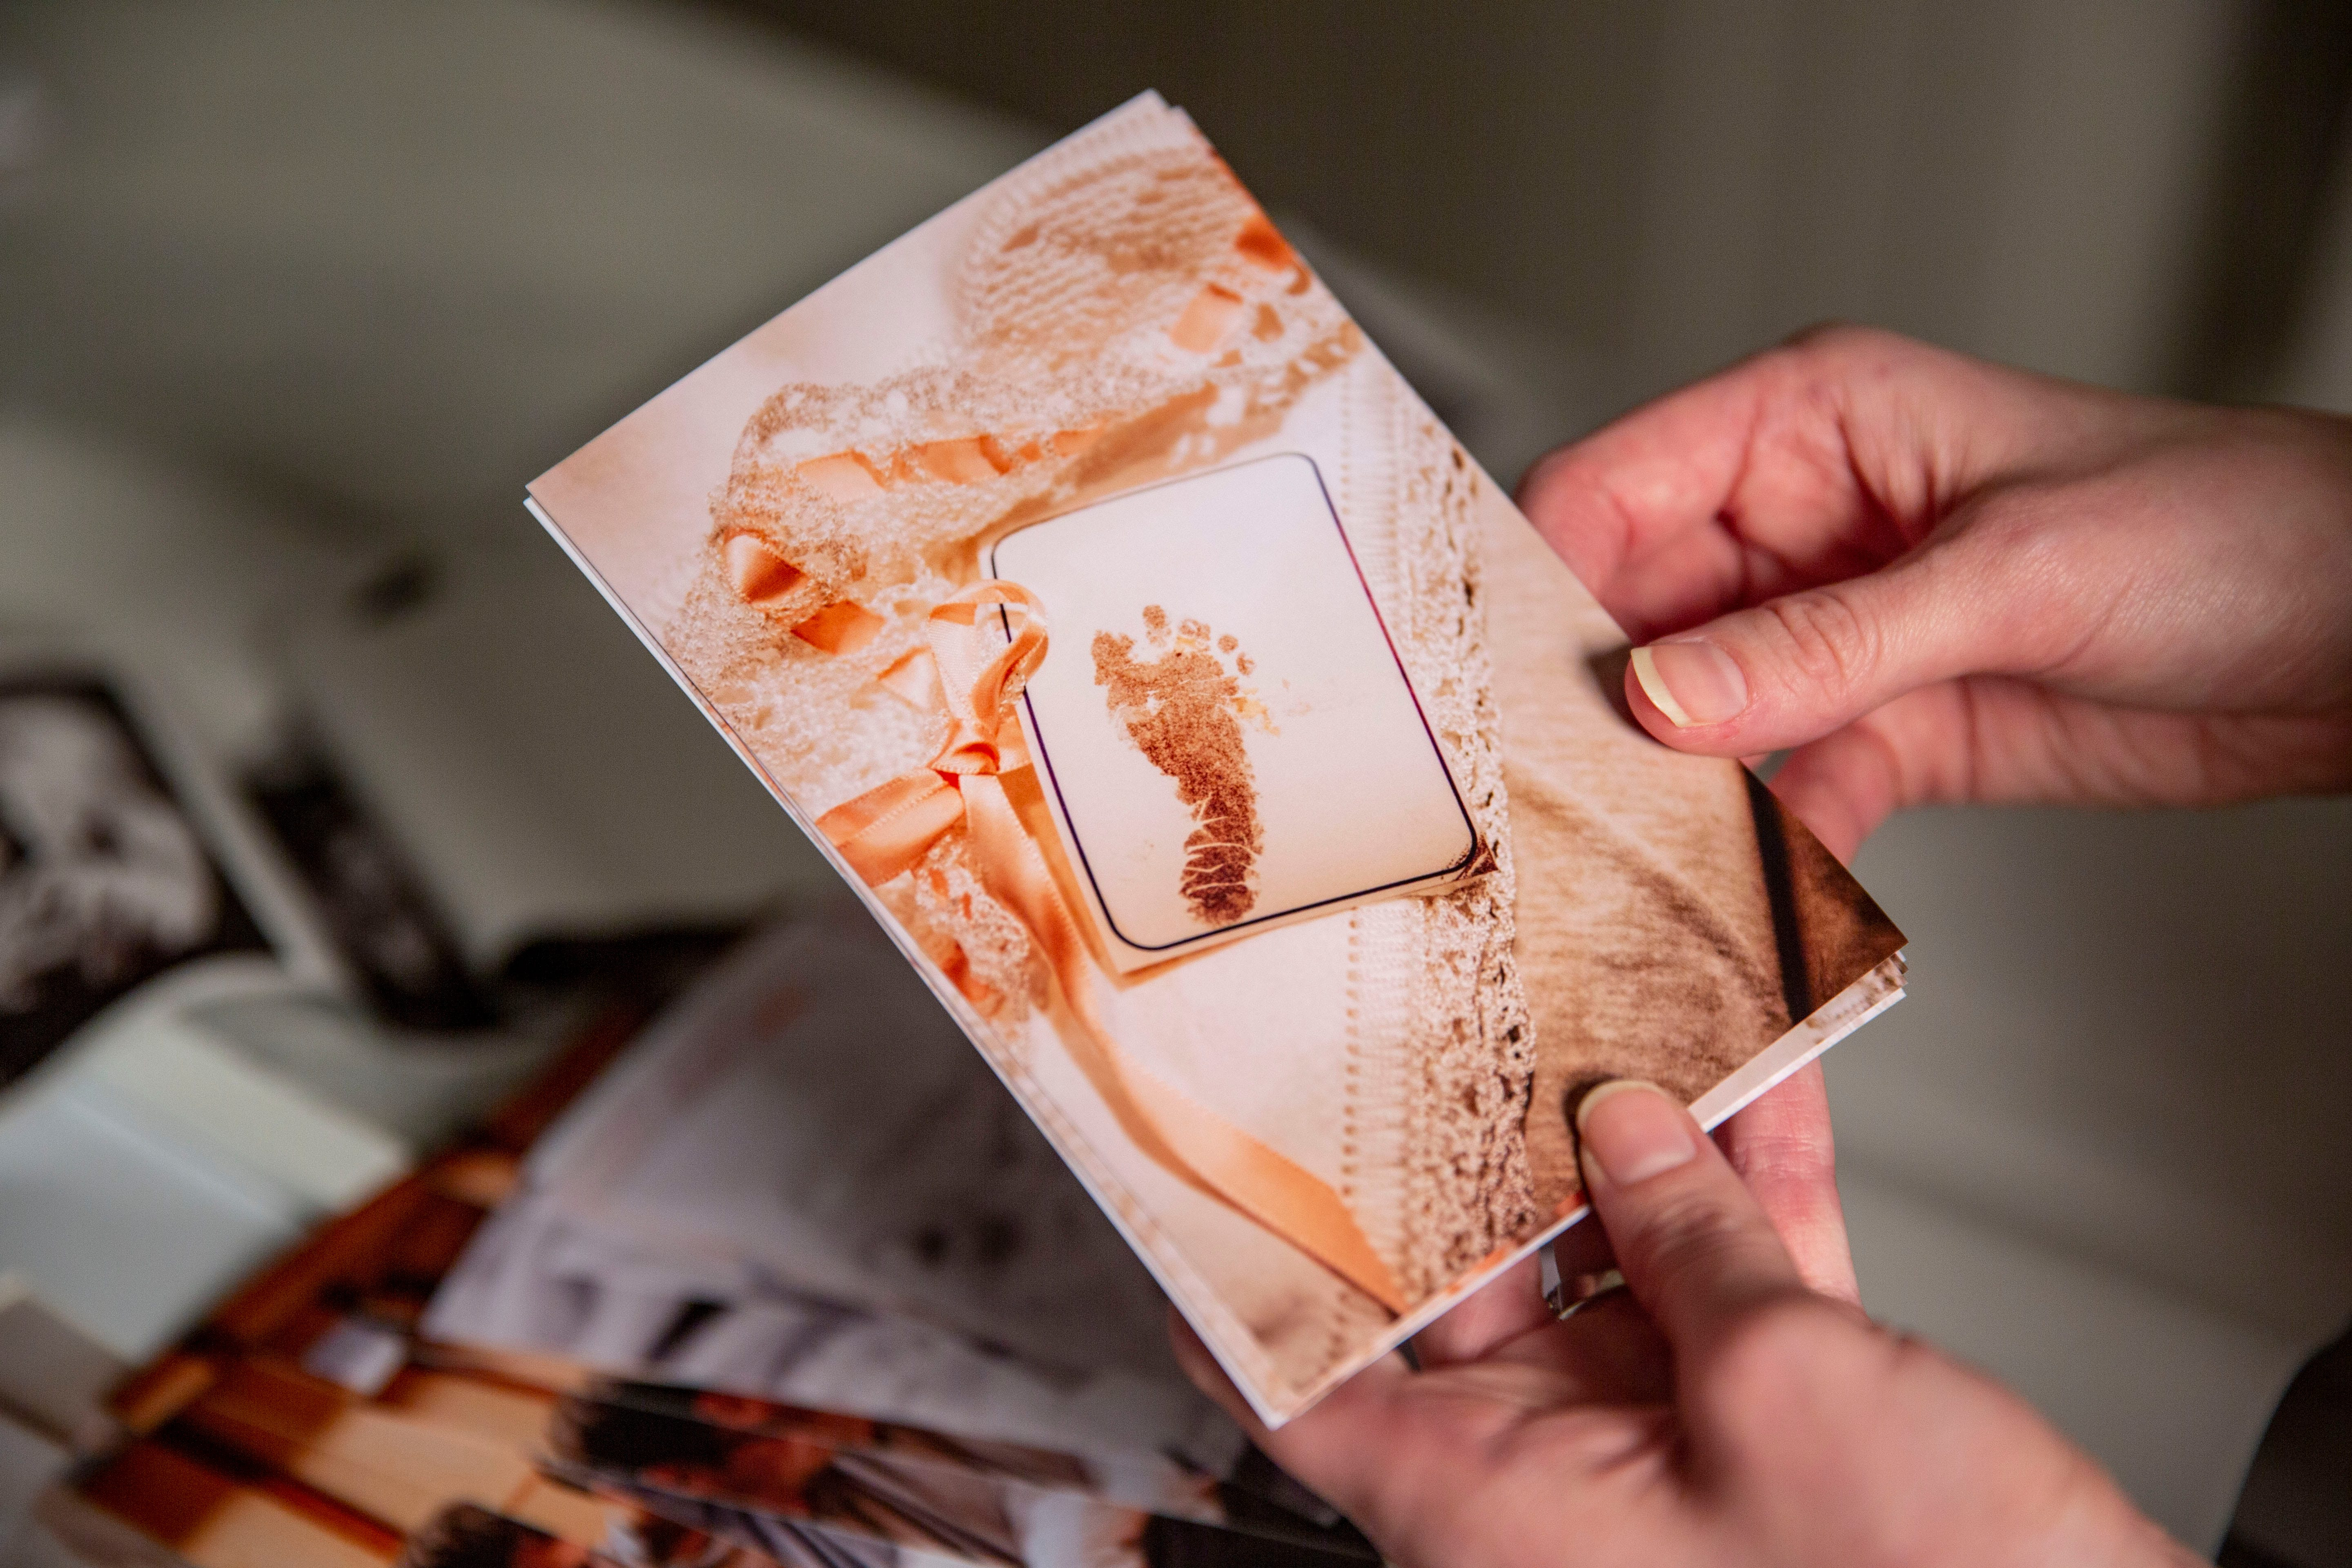 McKenzie Harreld looks at photos taken by nurse Cherish Shuka of her daughter Blakely's footprint after she gave birth to her and her son, Calvin, at Mary Greeley Medical Center in Ames. Blakely was stillborn, and Shuka volunteered to photograph the family together so that the Harrelds would have something to help remember her.